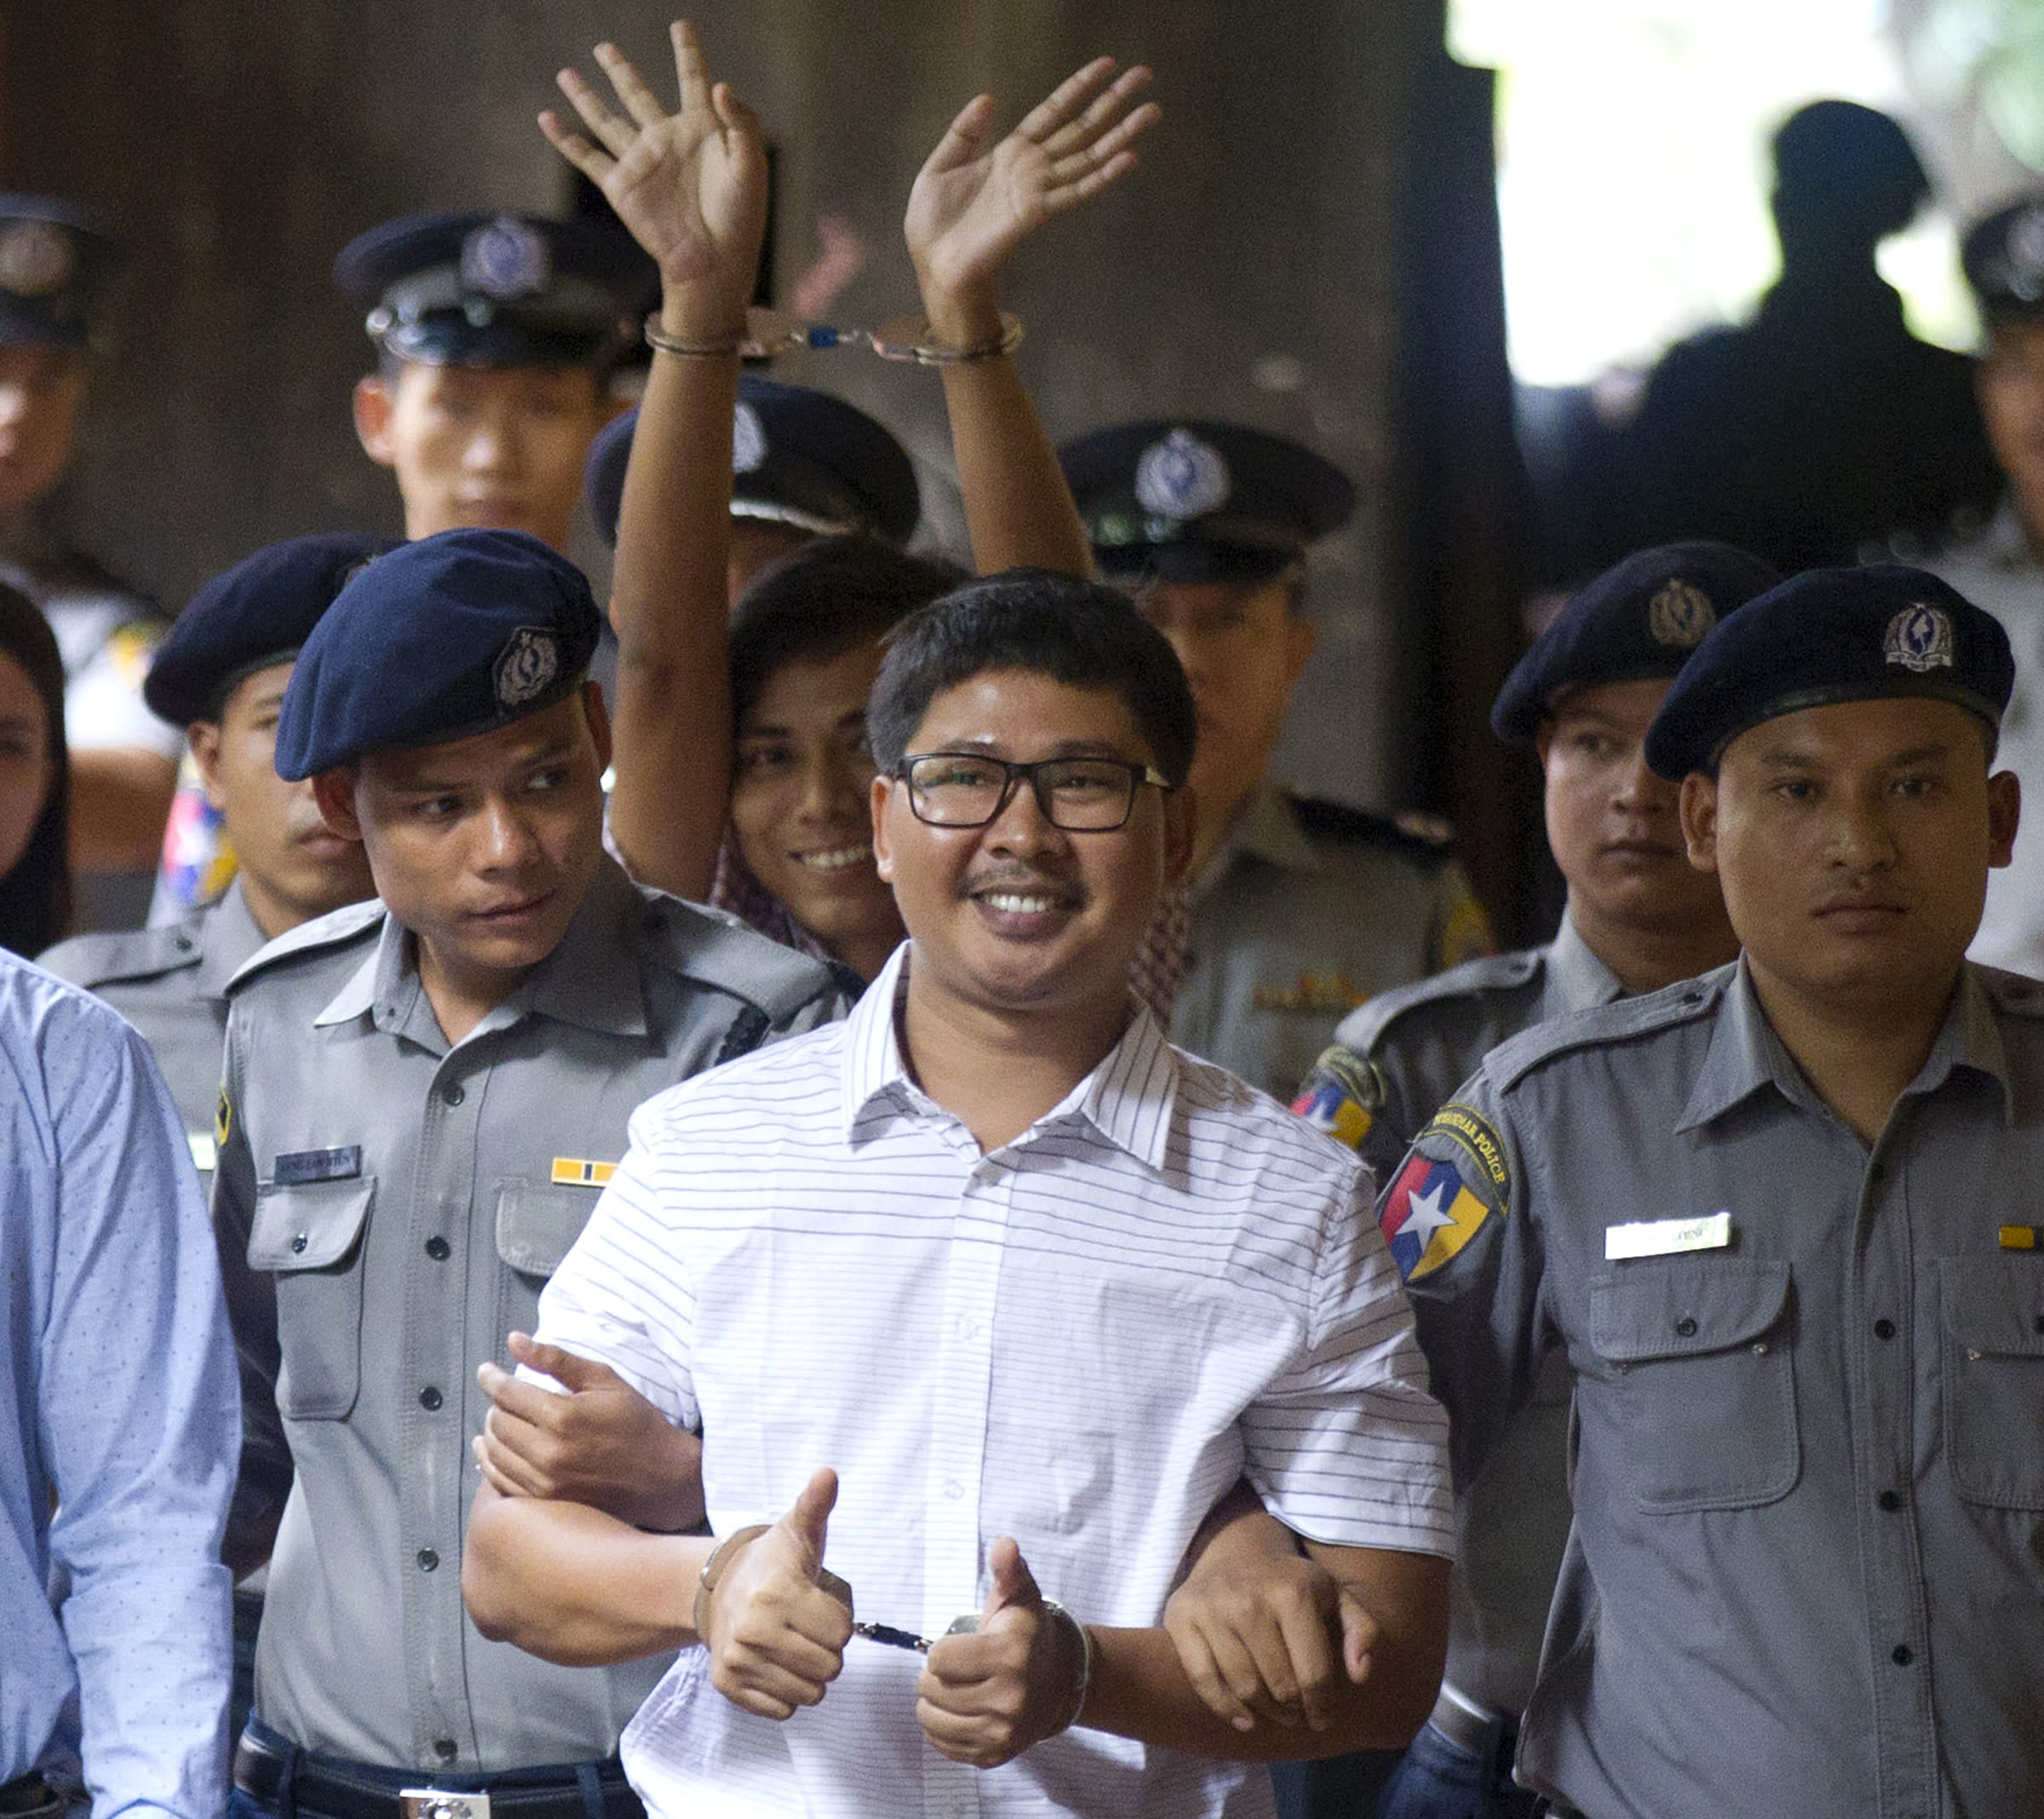 In this Monday, Aug. 27, 2018, file photo, two Reuters journalists Wa Lone, center, and Kyaw Soe Oo, center back, gestures while being escorted by police upon arrival at a court in Yangon, Myanmar. The Myanmar court delayed the verdict against two Reuters journalists on the charge of possessing official documents illegally in a case that has drawn attention to the faltering state of press freedom in the troubled Southeast Asian nation. The verdict that was to be delivered Monday was postponed to Sept. 3. (AP Photo/Thein Zaw, File)